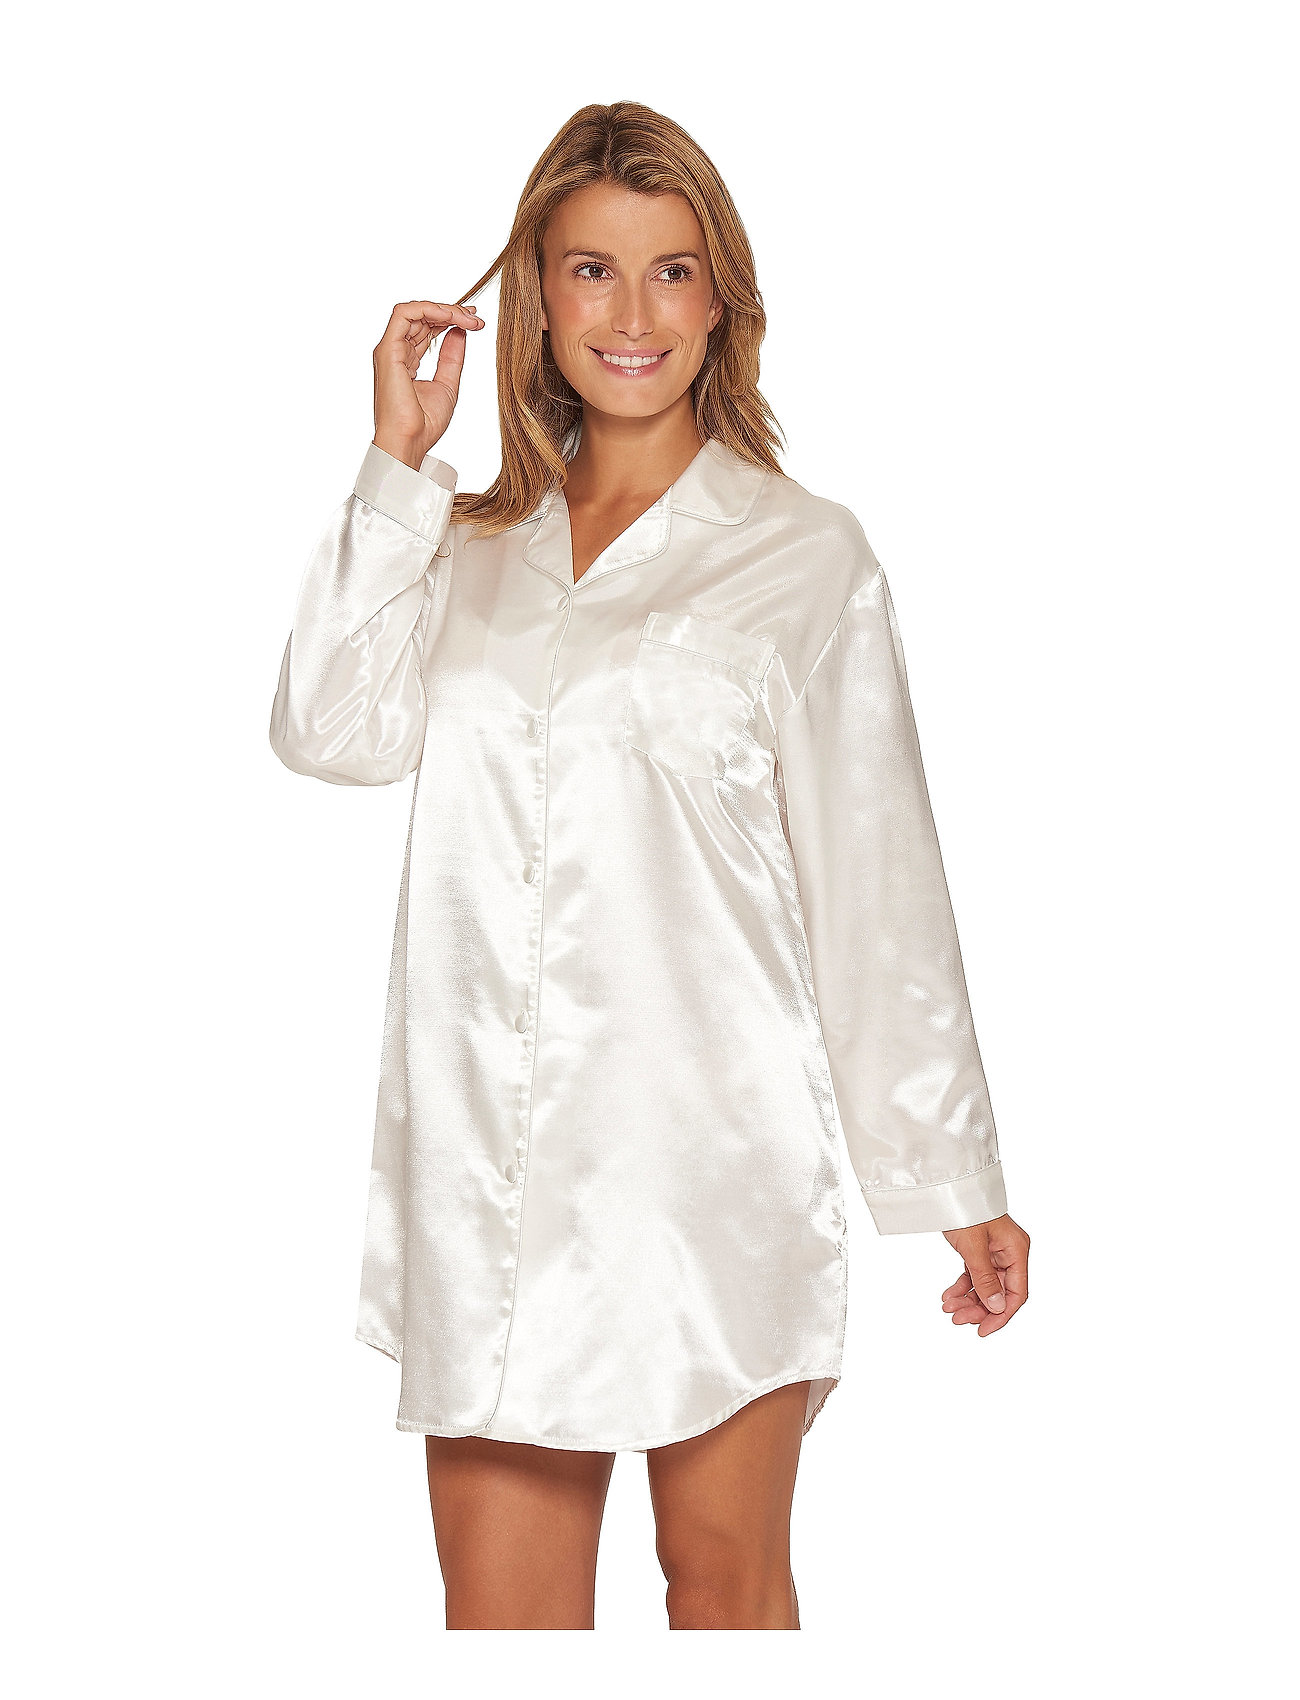 Lady Avenue - Satin Long Sleeve Nightshirt - tops - off-white - 0